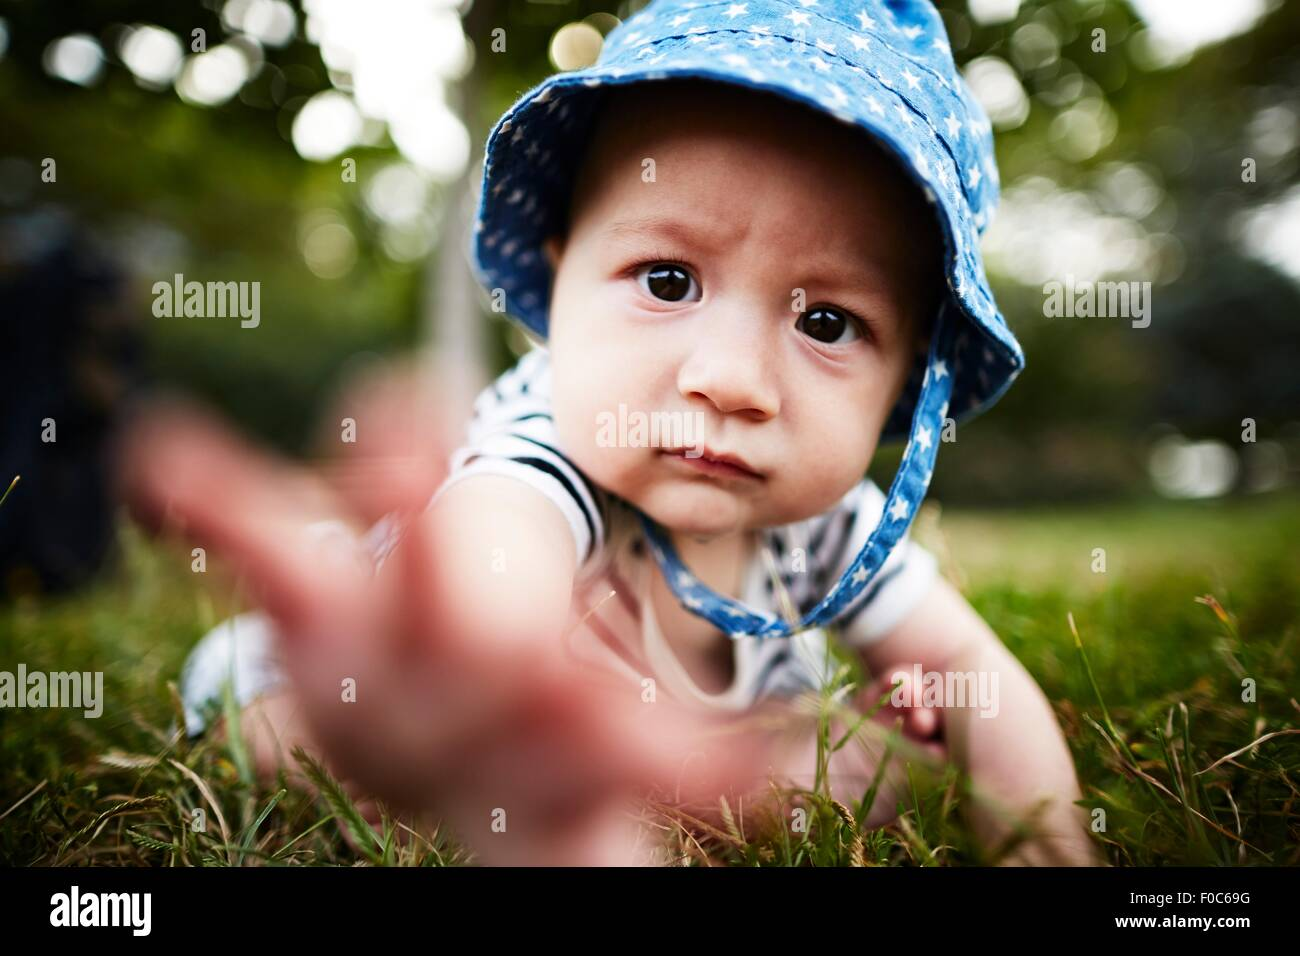 Close up of baby boy reaching out towards camera - Stock Image